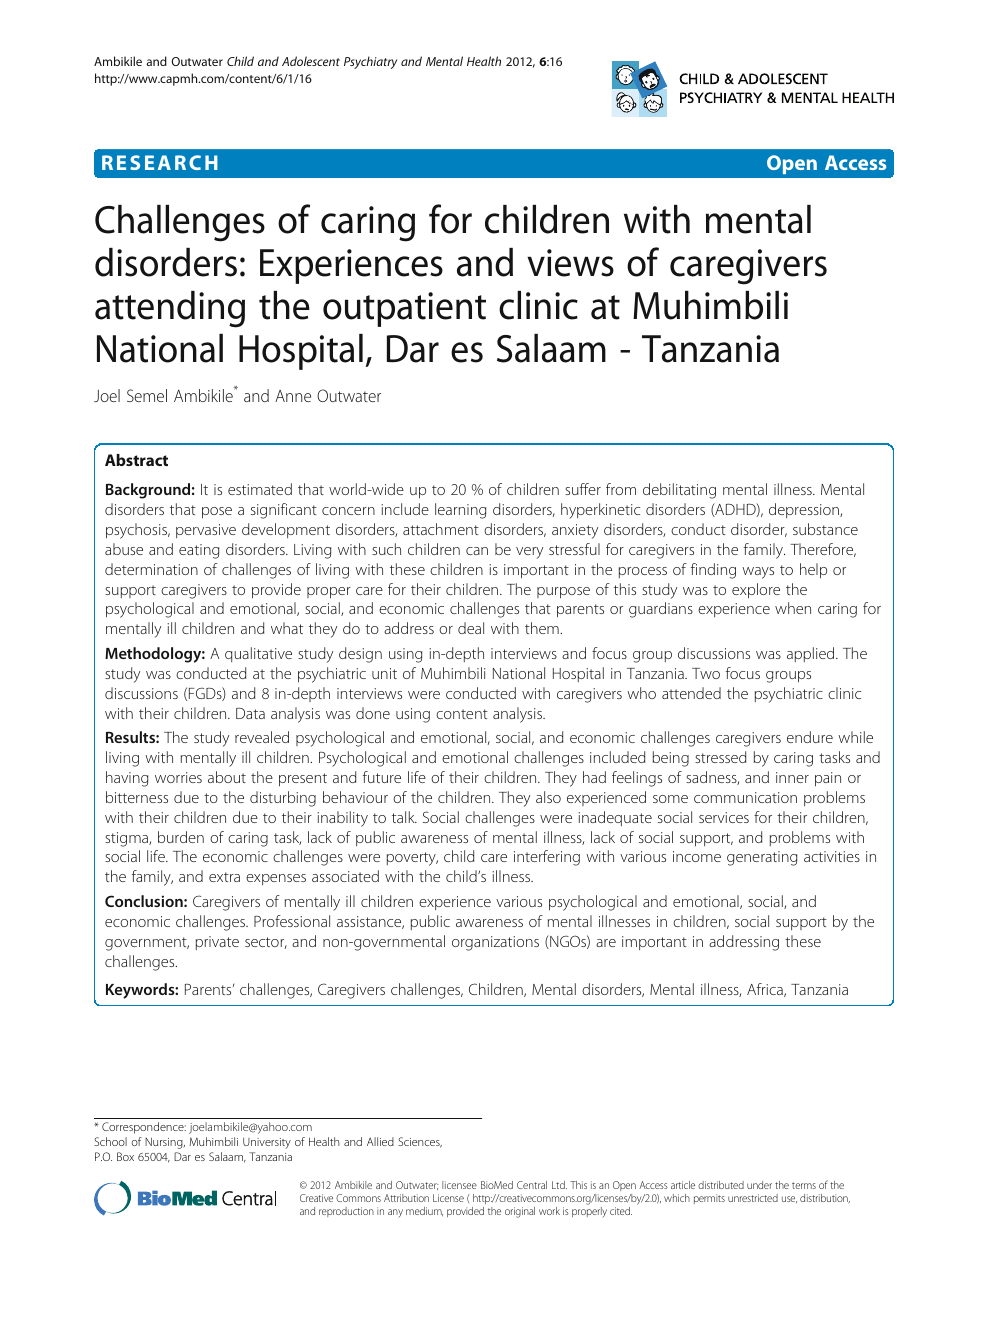 Challenges Of Caring For Children With Mental Disorders Experiences And Views Of Caregivers Attending The Outpatient Clinic At Muhimbili National Hospital Dar Es Salaam Tanzania Topic Of Research Paper In